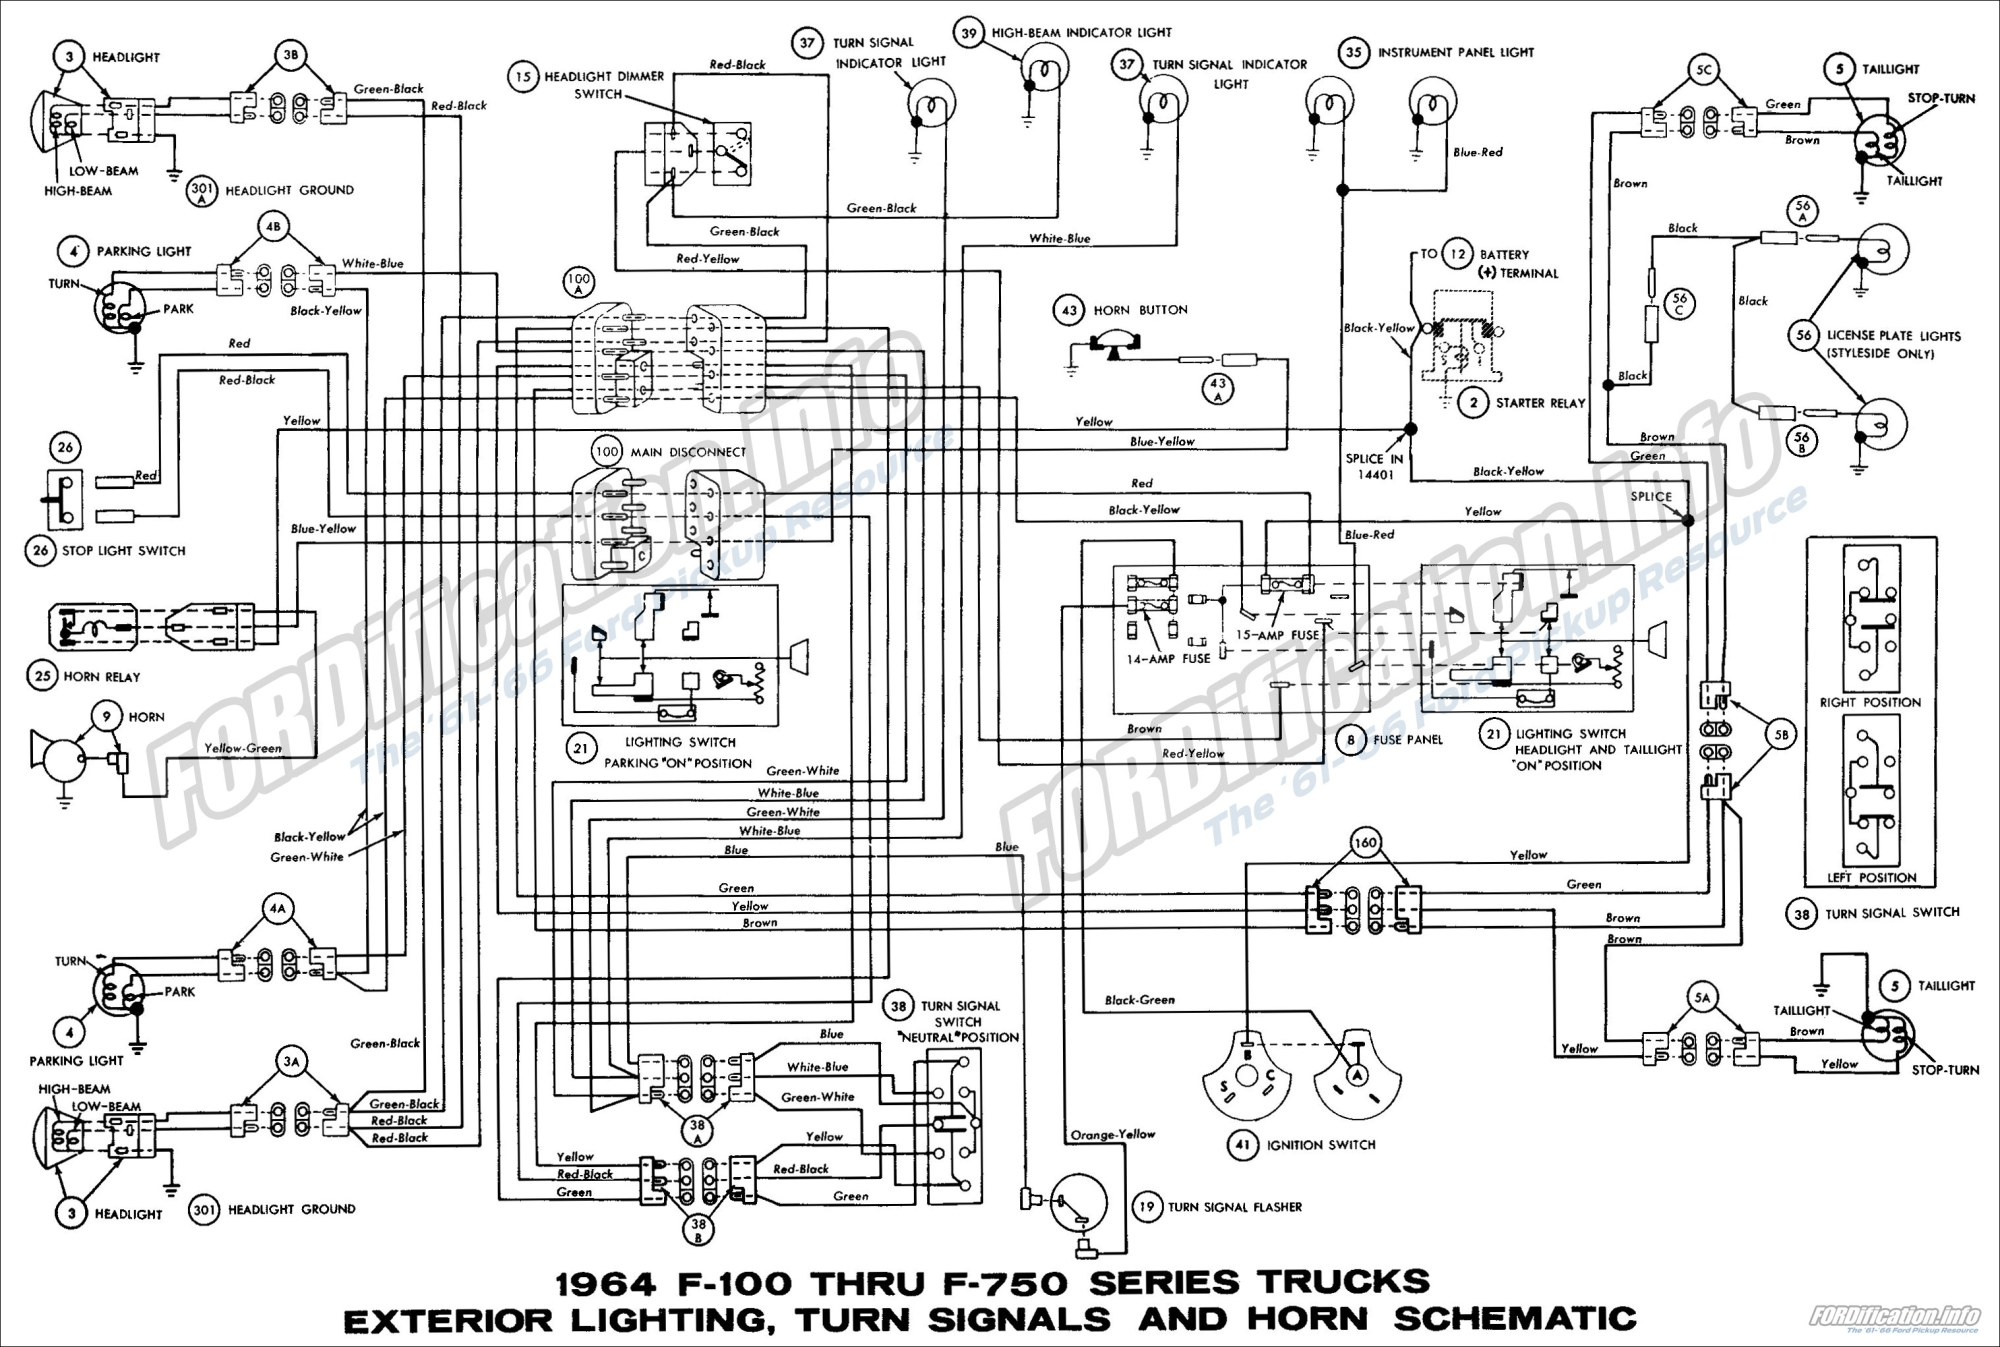 hight resolution of 1964 ford f100 wiring harness wiring diagram third level ford f100 interior 1959 ford f100 wiring schematic